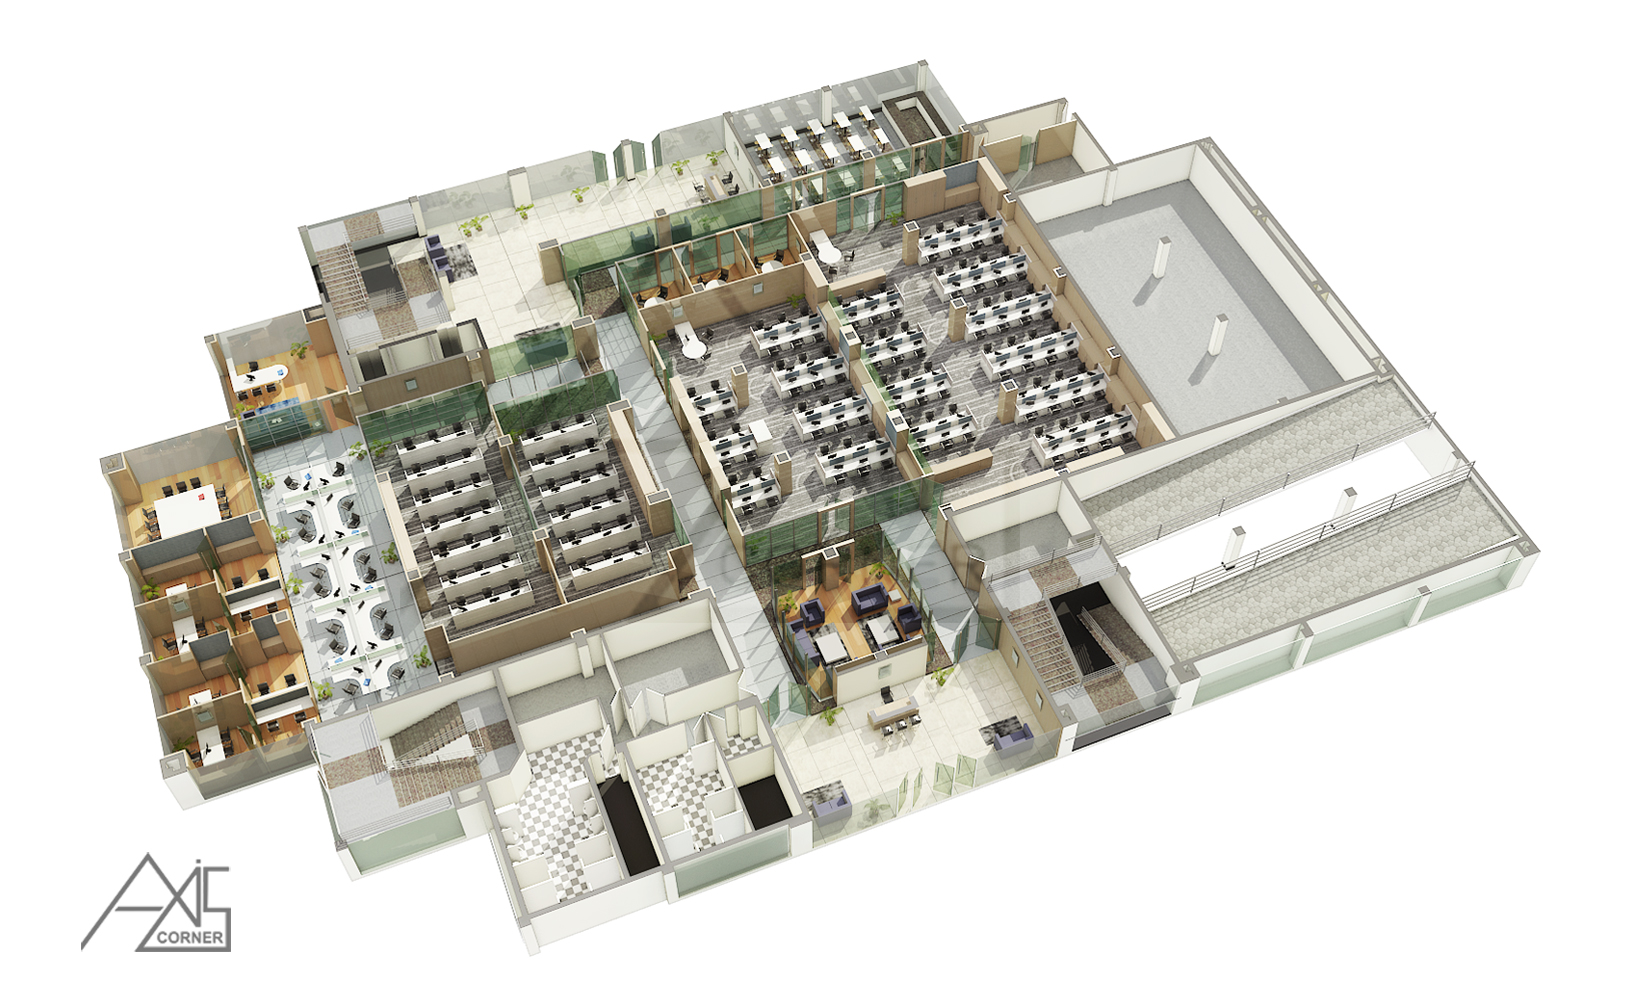 3d Architectural Rendering Services Company 3d Architect: 3d architectural floor plans